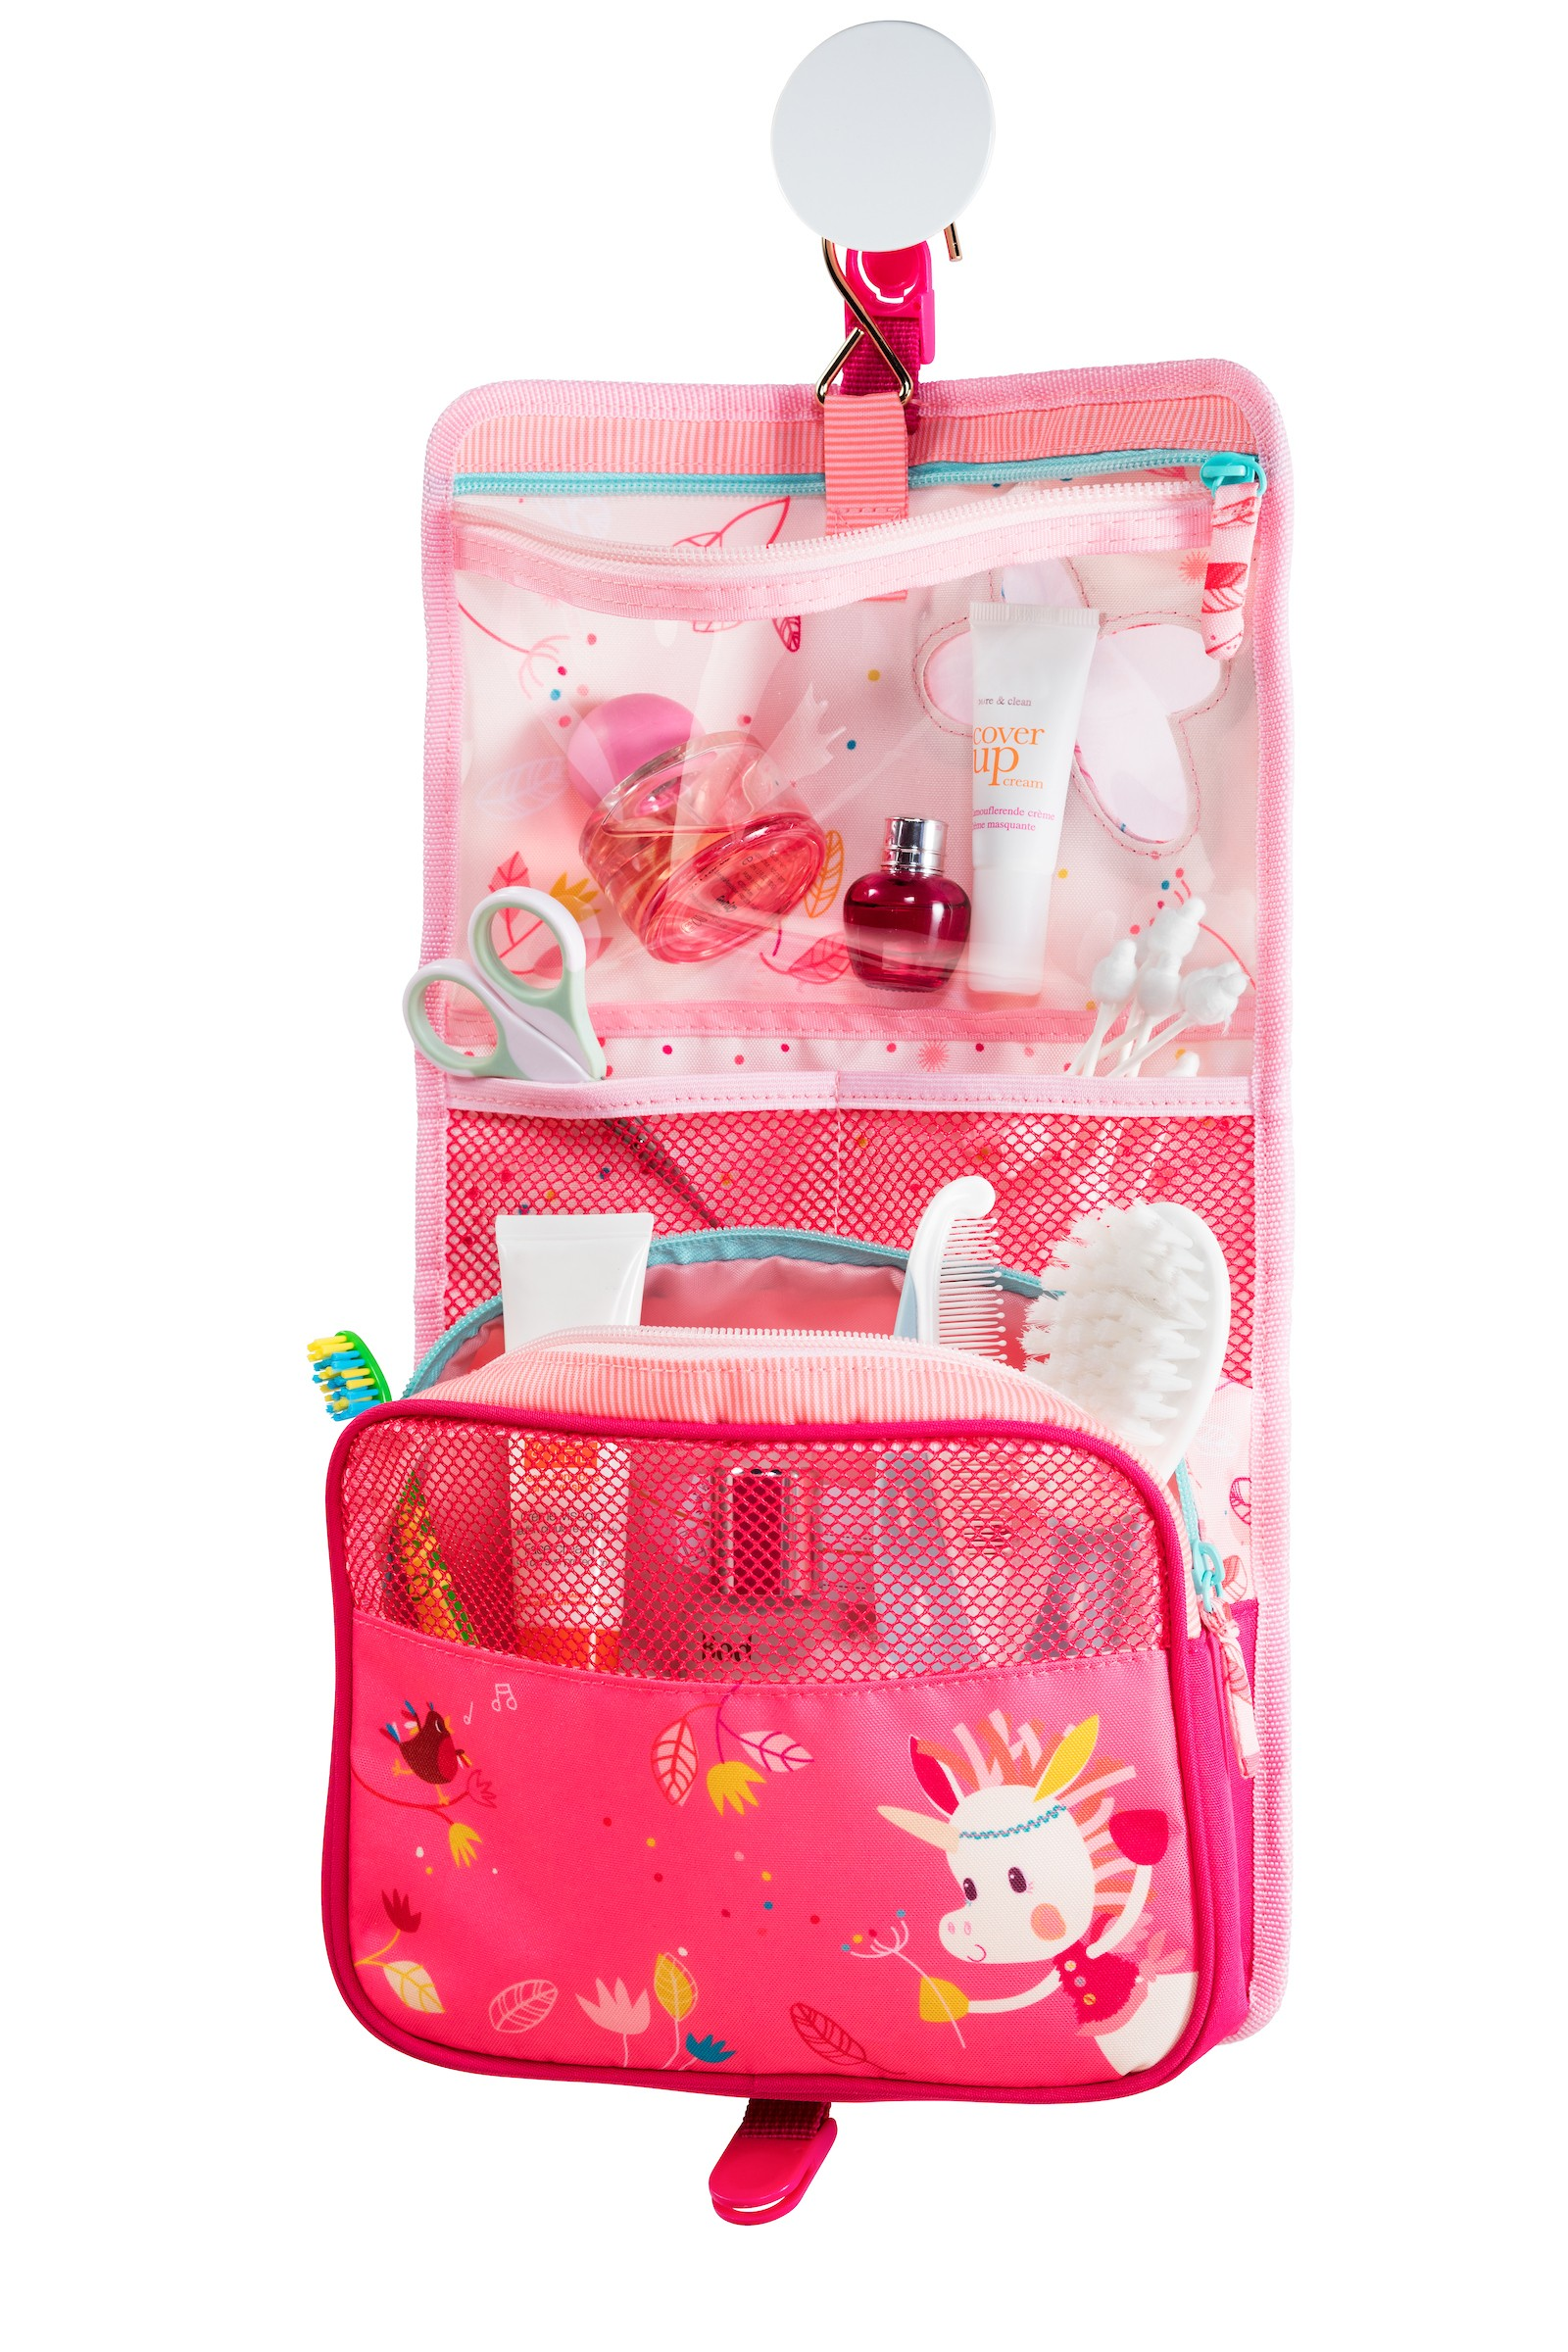 trousse de toilette lilliputiens